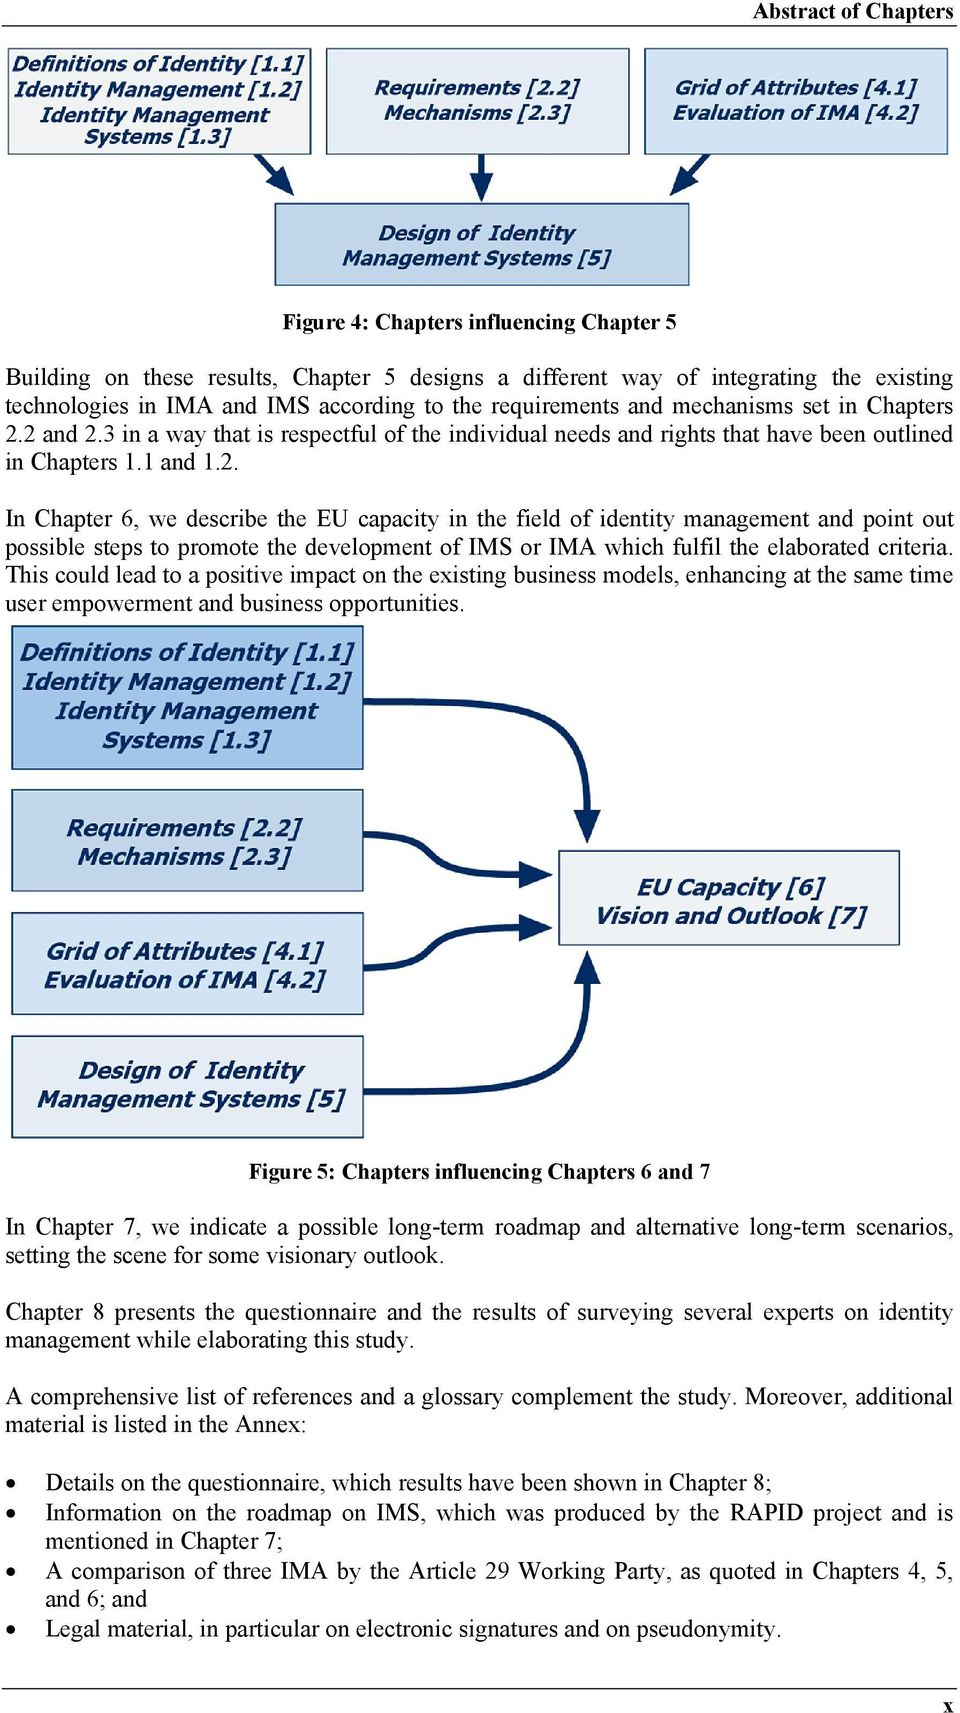 2 and 2.3 in a way that is respectful of the individual needs and rights that have been outlined in Chapters 1.1 and 1.2. In Chapter 6, we describe the EU capacity in the field of identity management and point out possible steps to promote the development of IMS or IMA which fulfil the elaborated criteria.